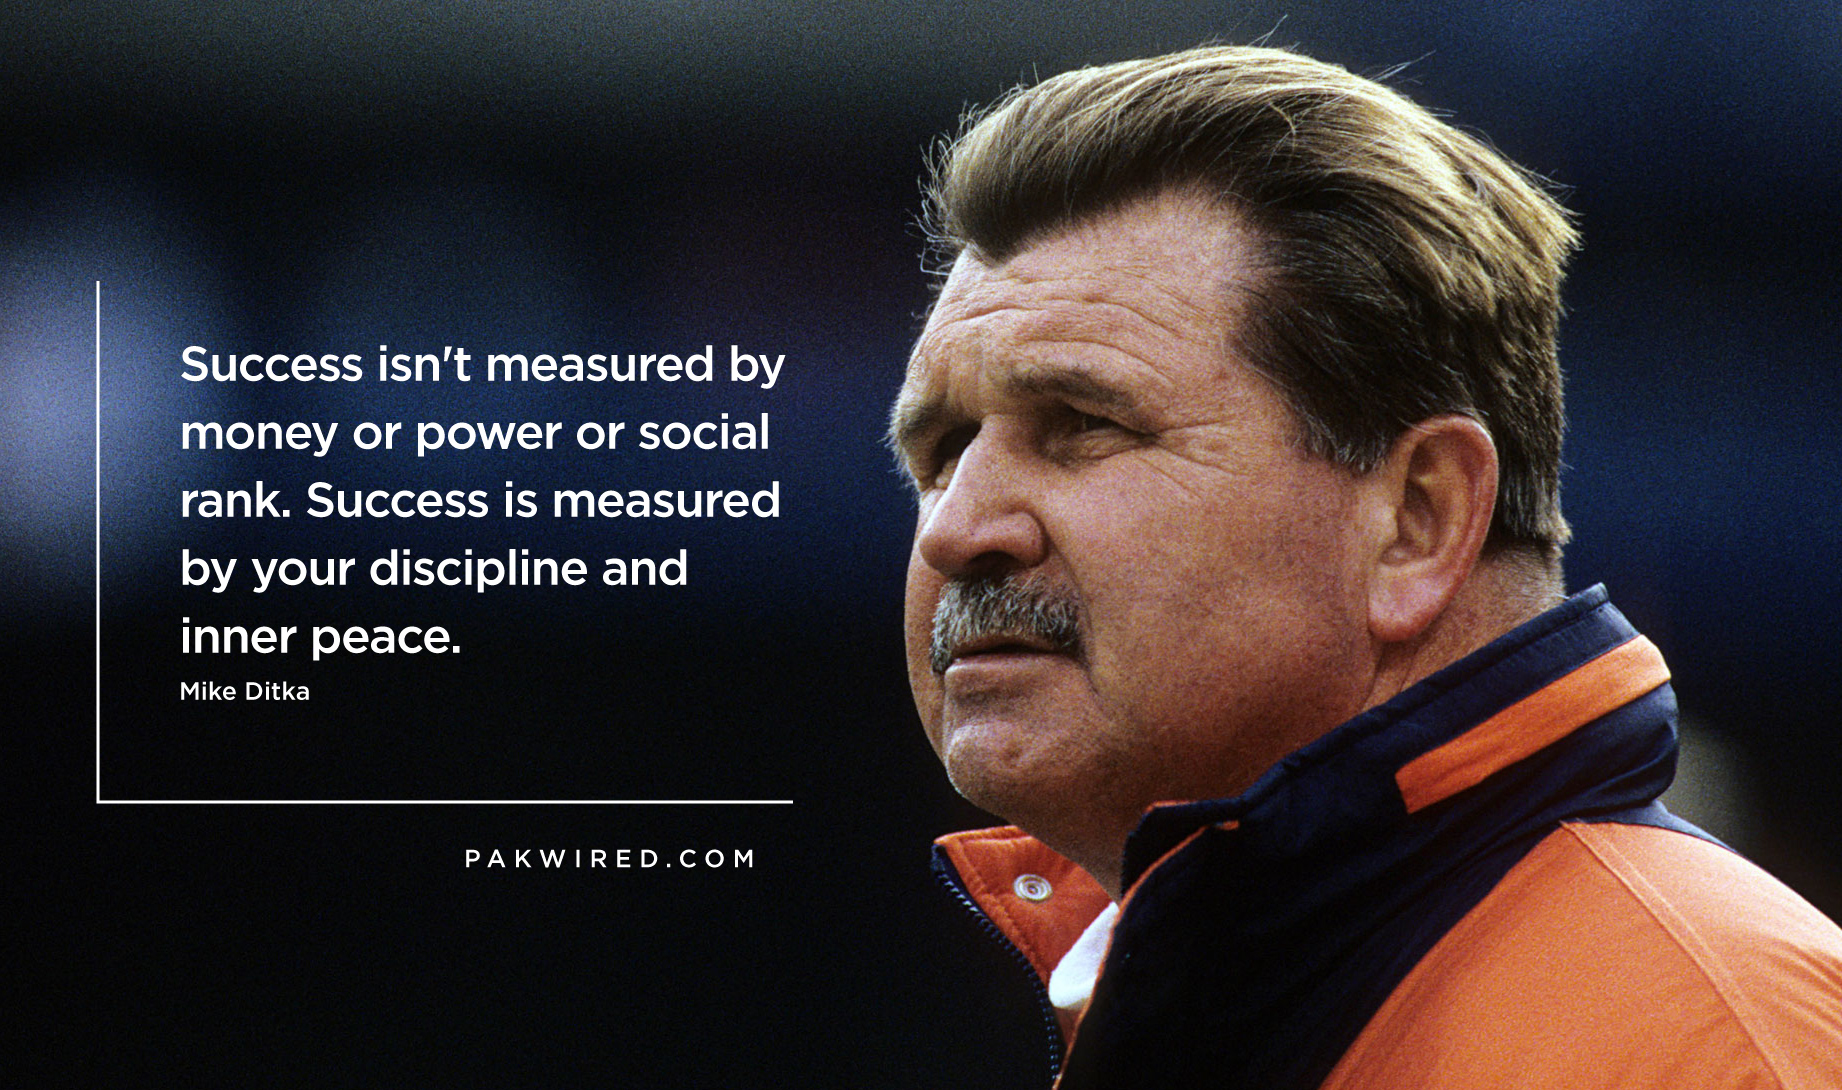 Success isn't measured by money or power or social rank. Success is measured by your discipline and inner peace.Mike Ditka